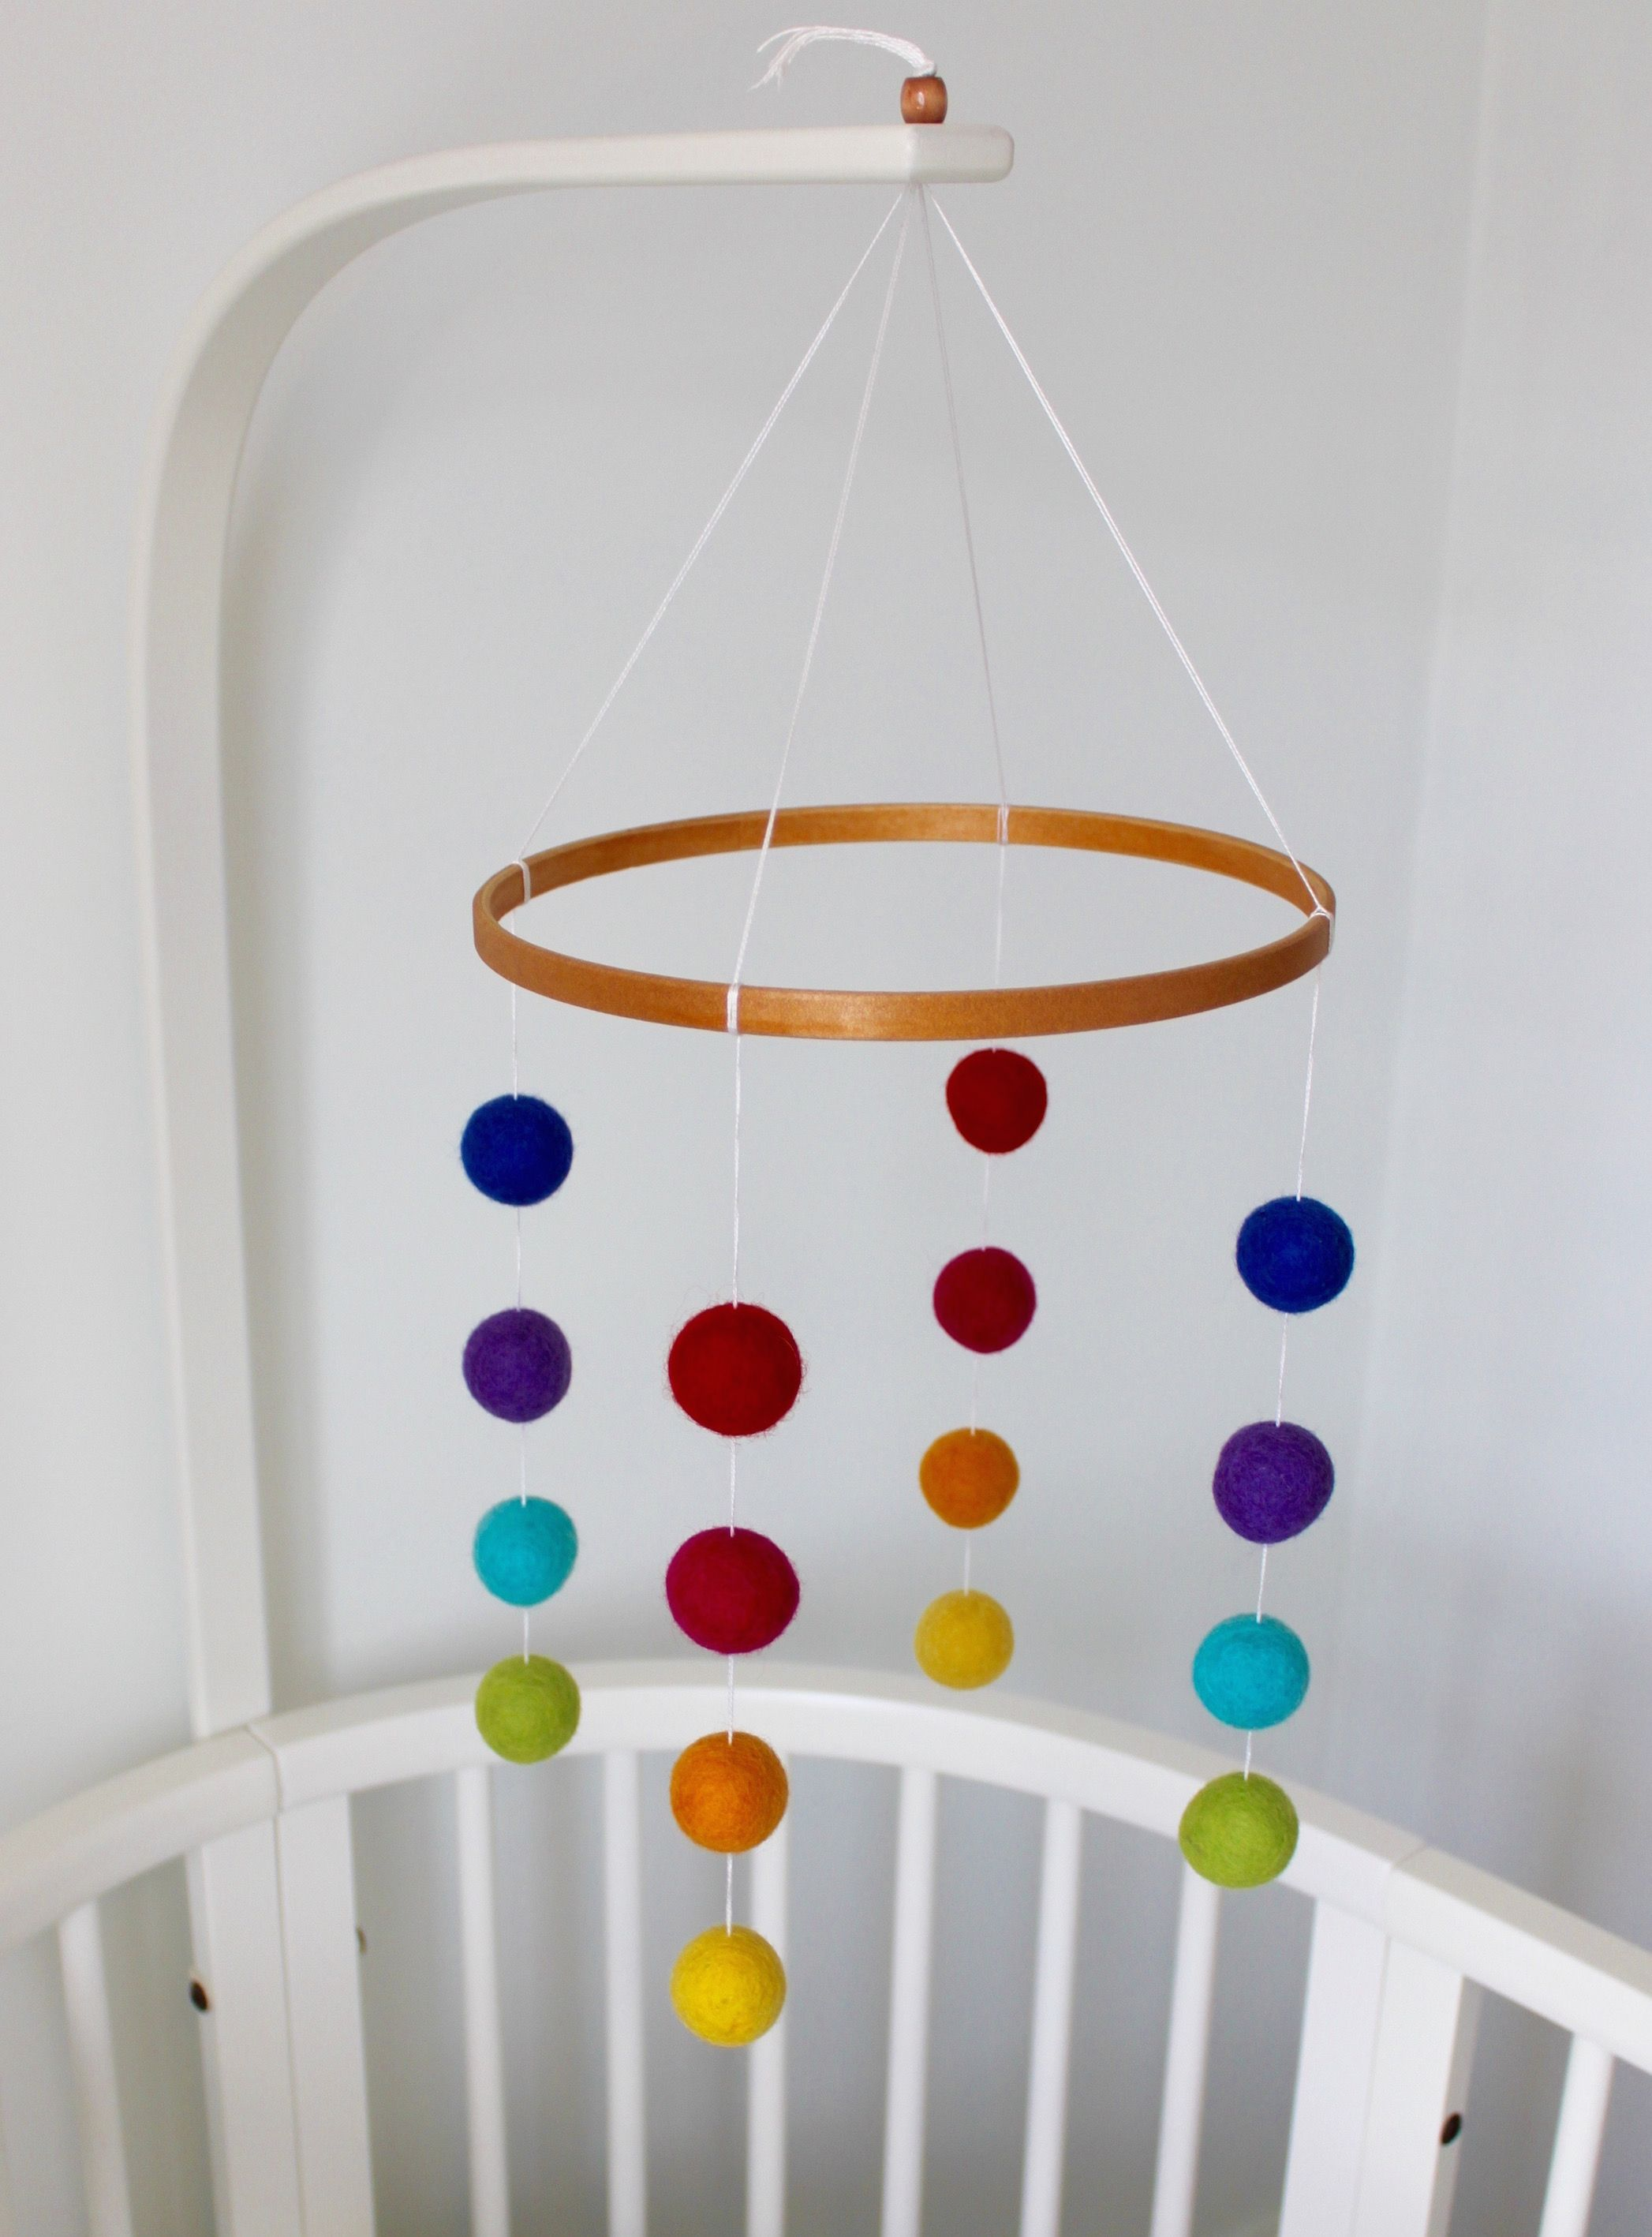 Our Best Ing Rainbow Mobile Brings Colour To Any Nursery Or Childs Room Made